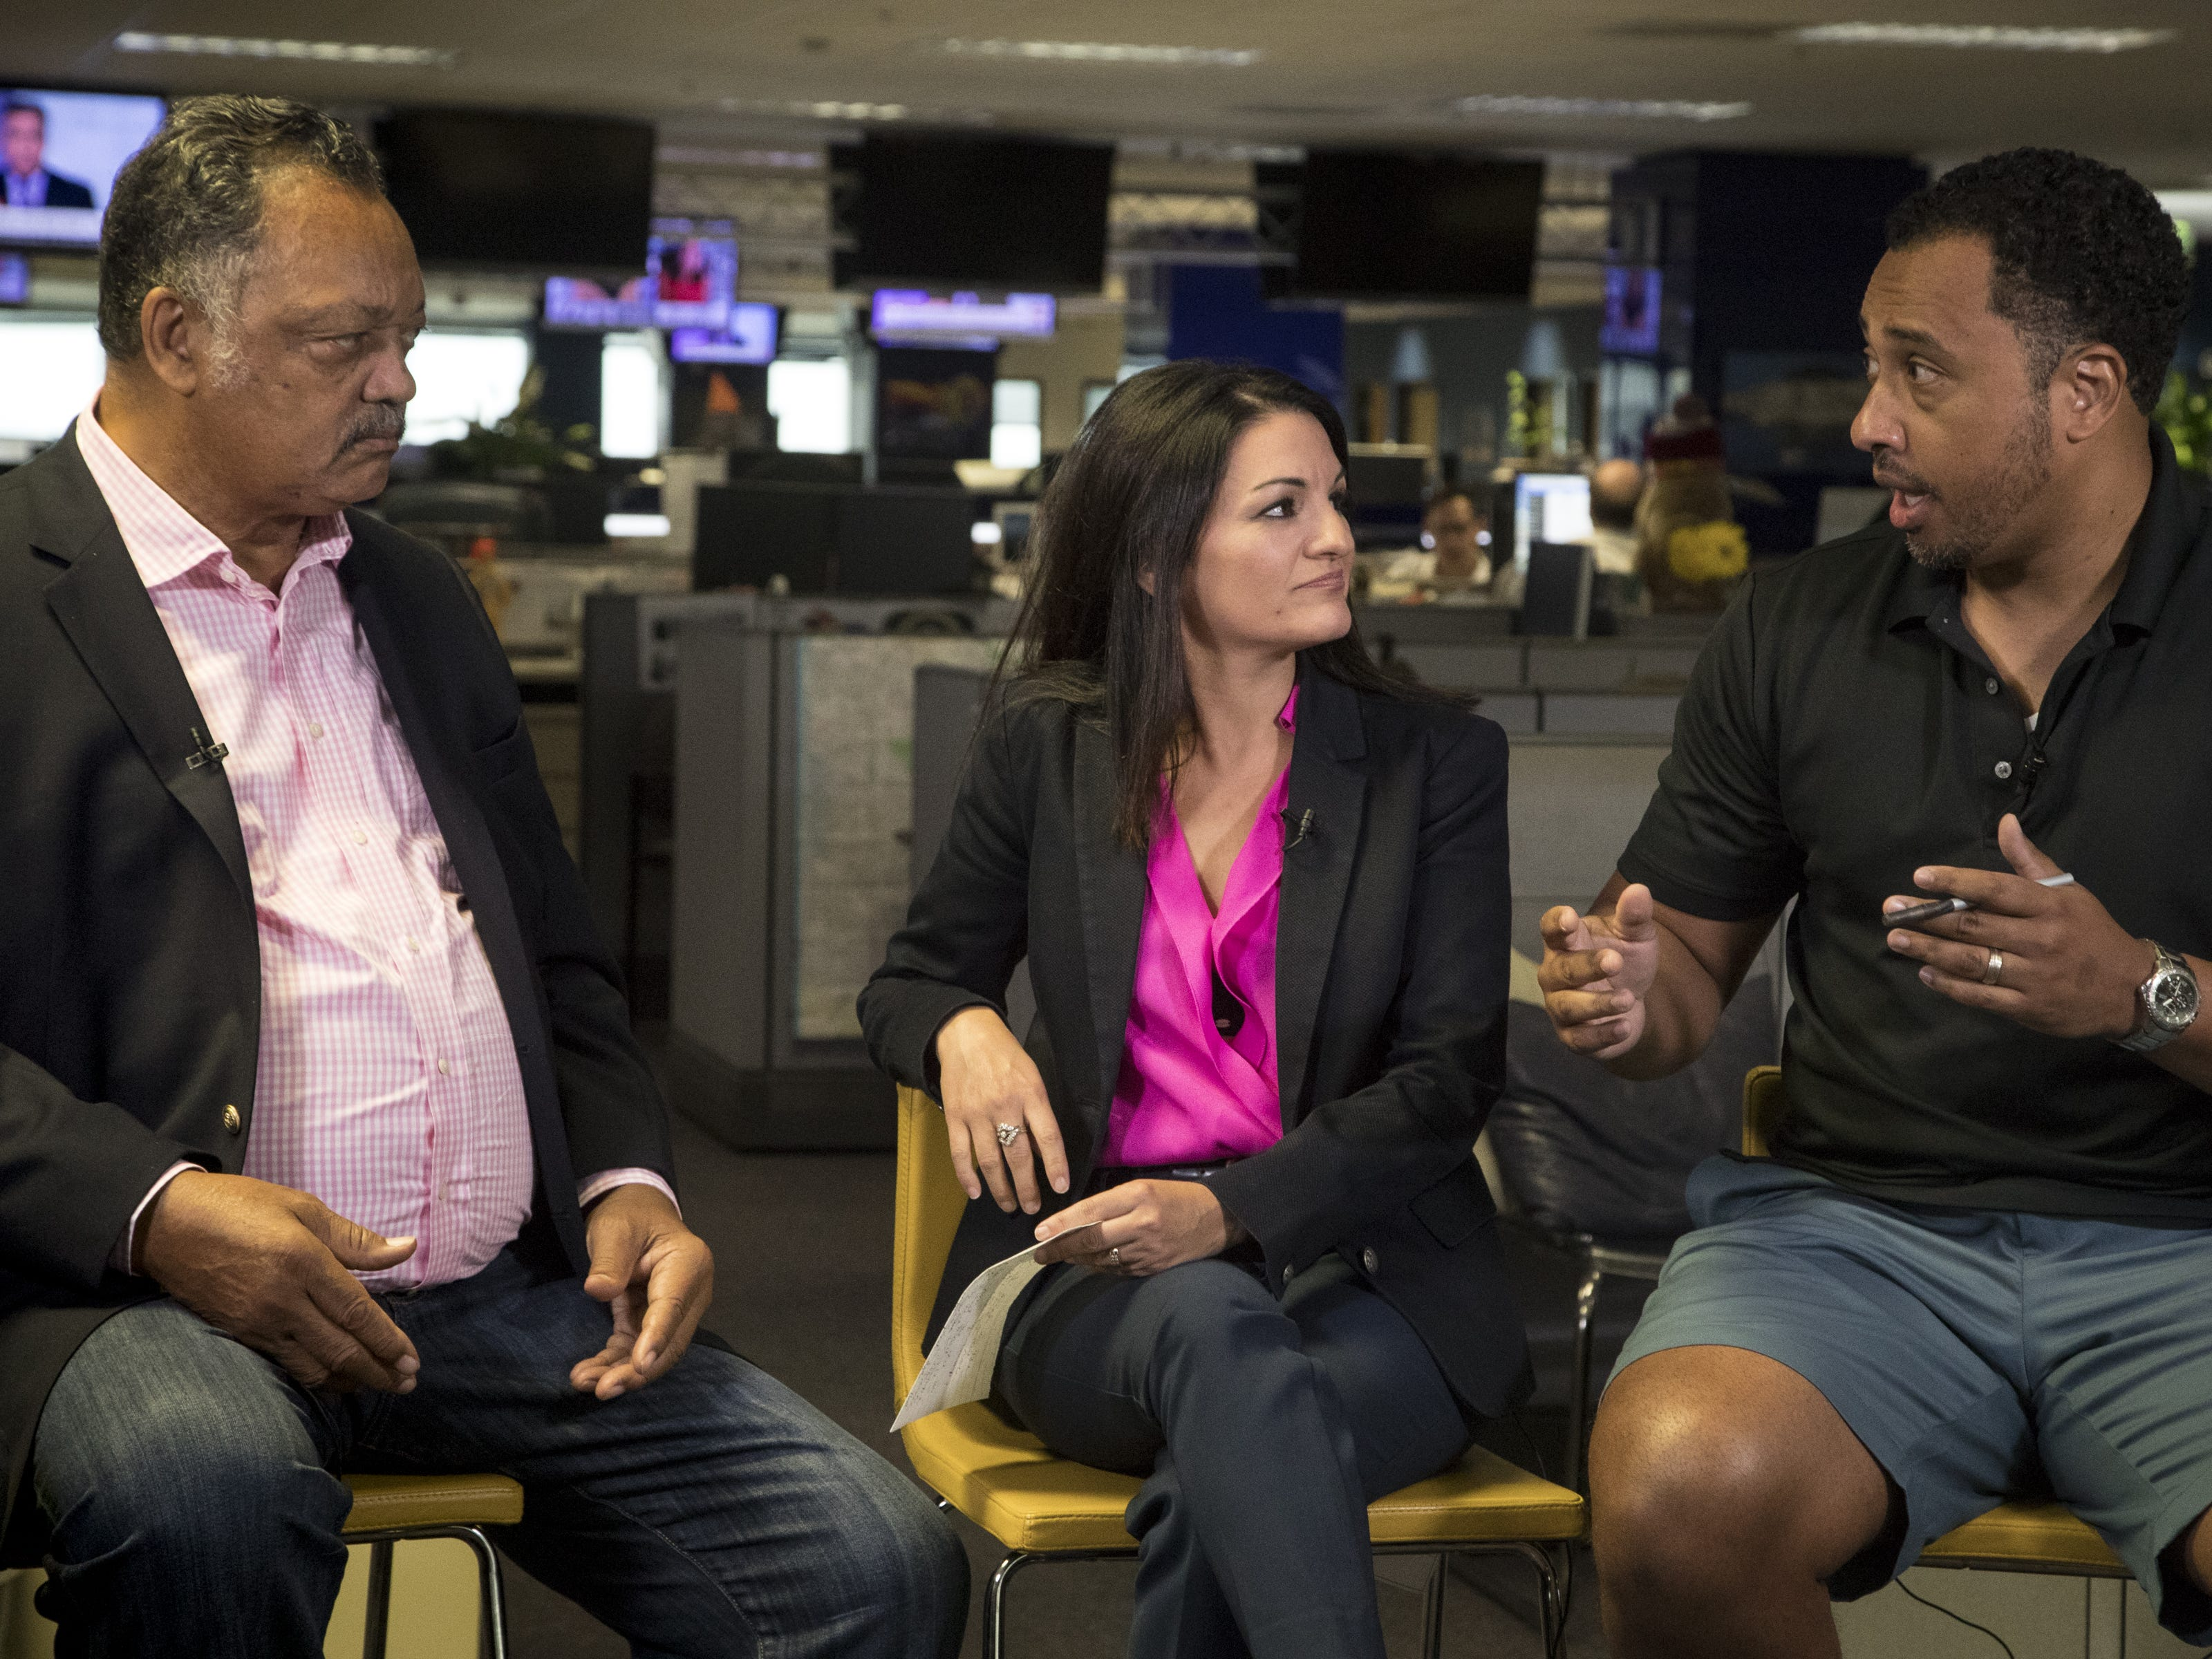 Greg Moore (right) asks Jesse Jackson a question during an interview on Aug. 8, 2018, at The Arizona Republic. Reporter Yvonne Wingett Sanchez (center) looks on.